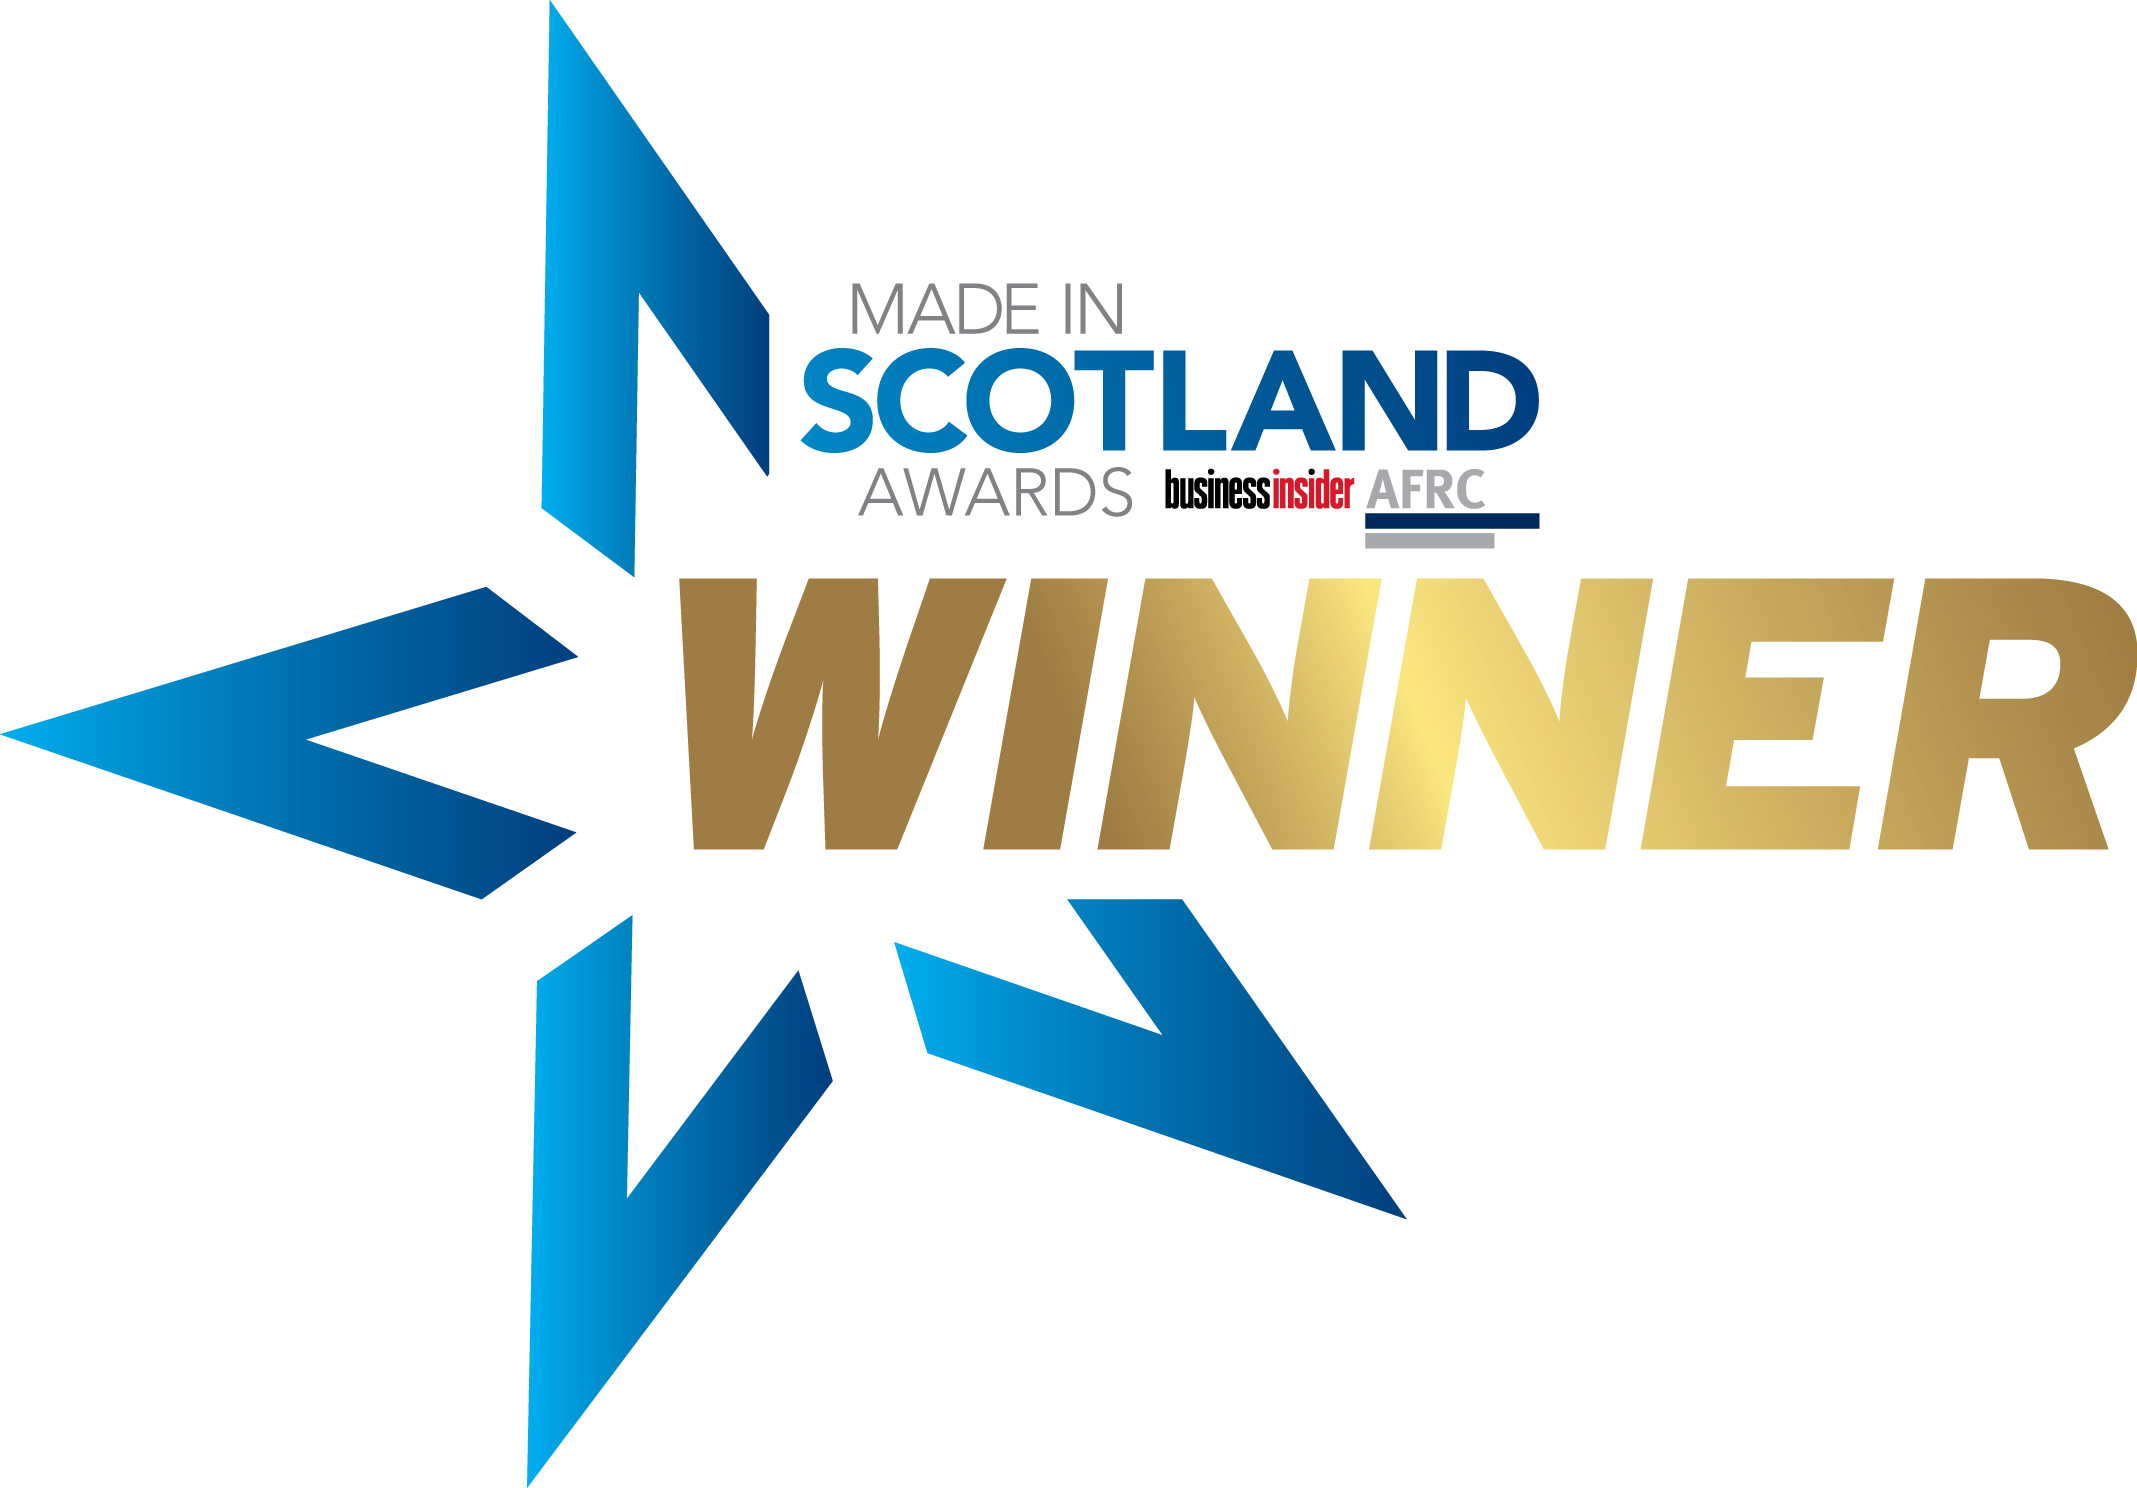 Made in Scotland Awards Winner Logo